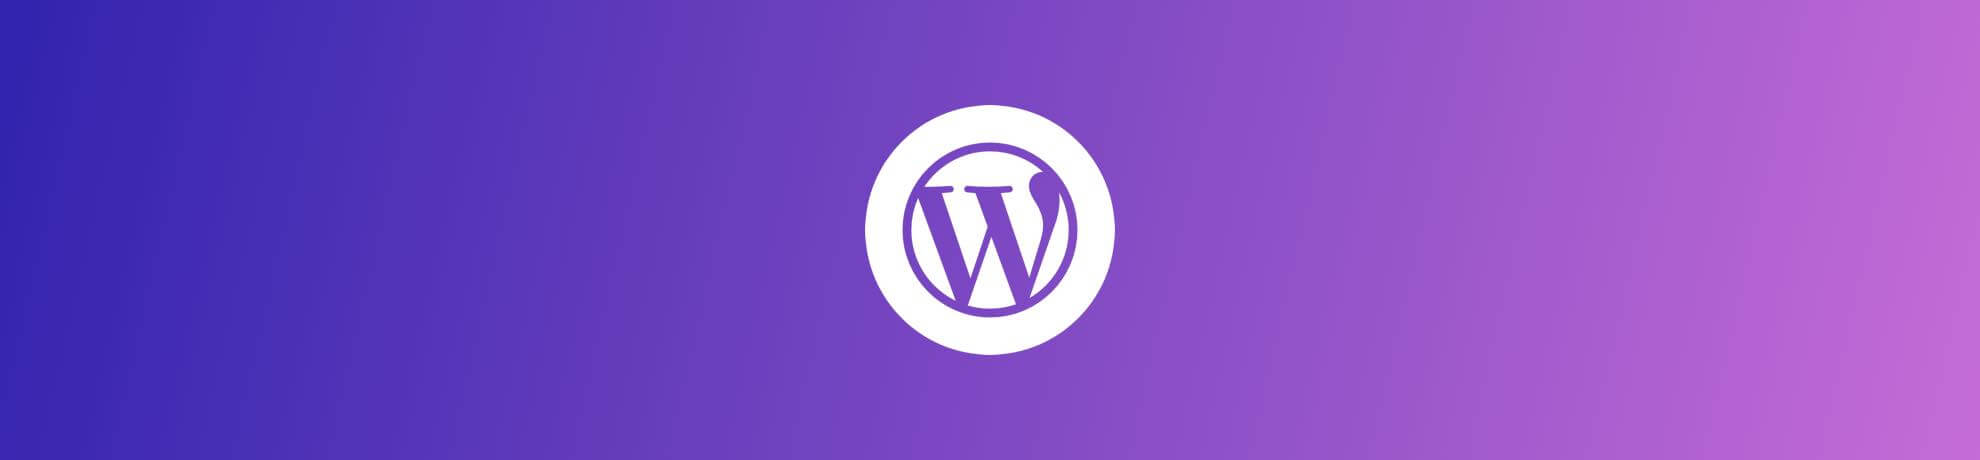 al communication formation wordpress